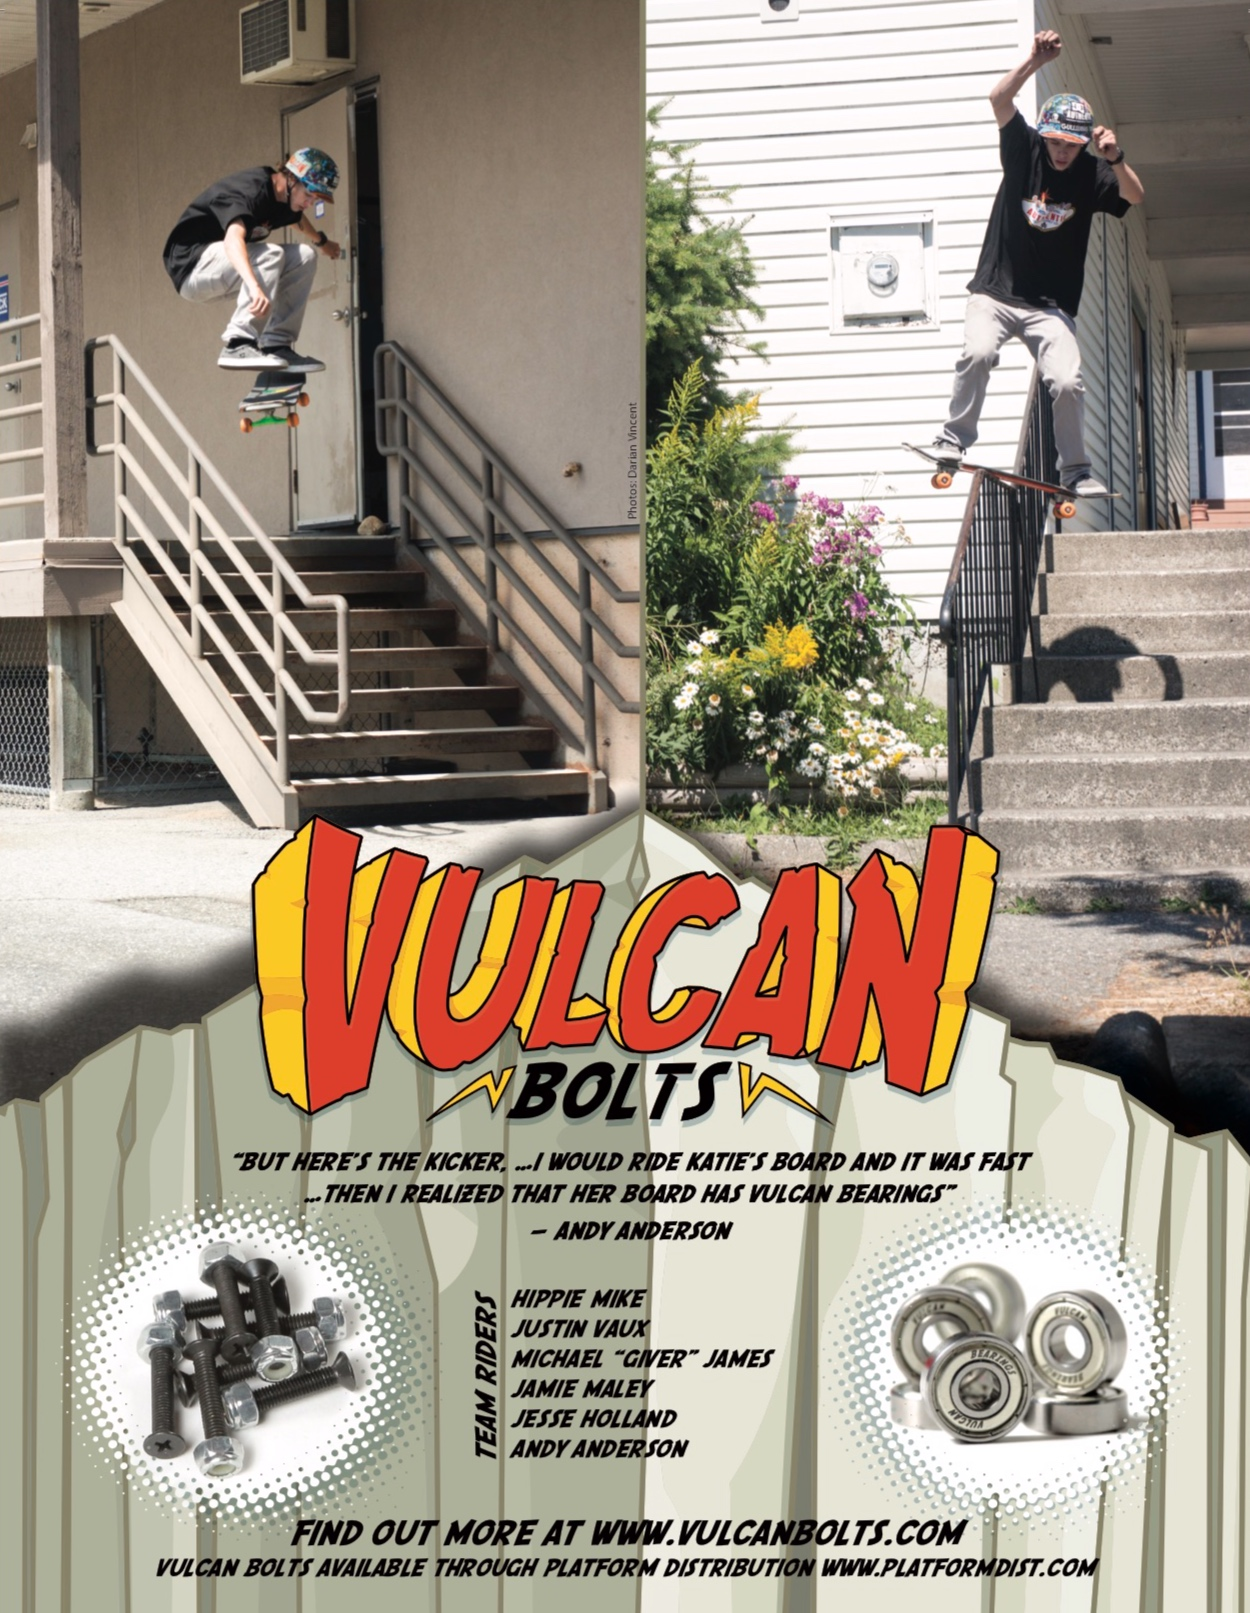 Andy Anderson ad for Vulcan Bolts in Concrete Magazine